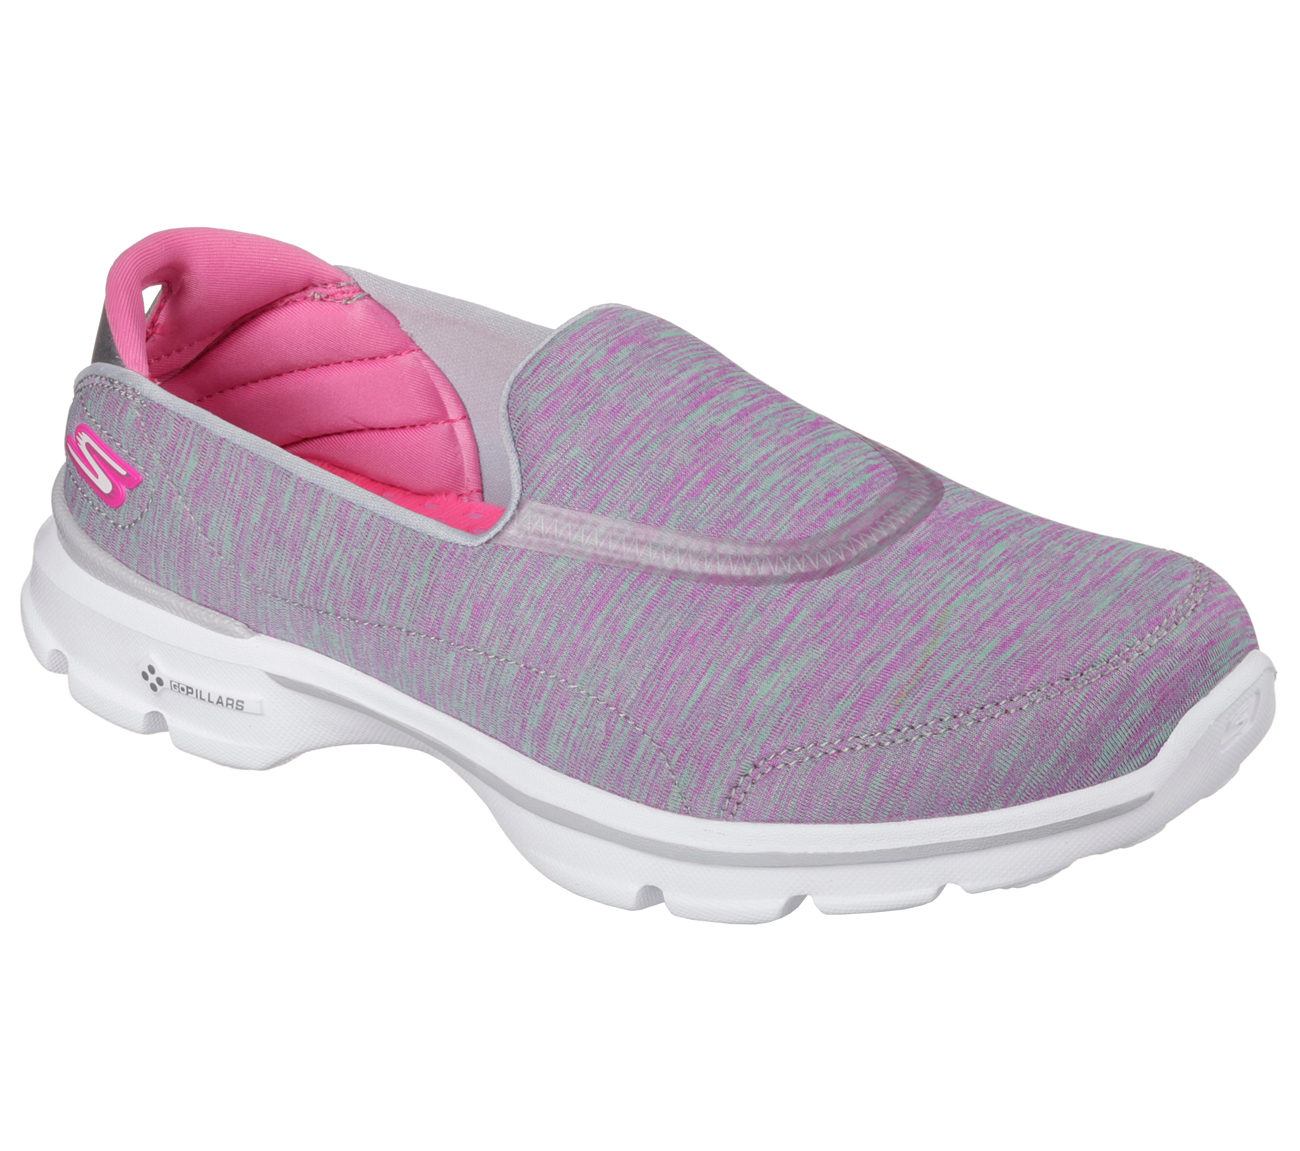 Exclusive SKECHERS Womens Shoes Online Free Shipping Both Ways